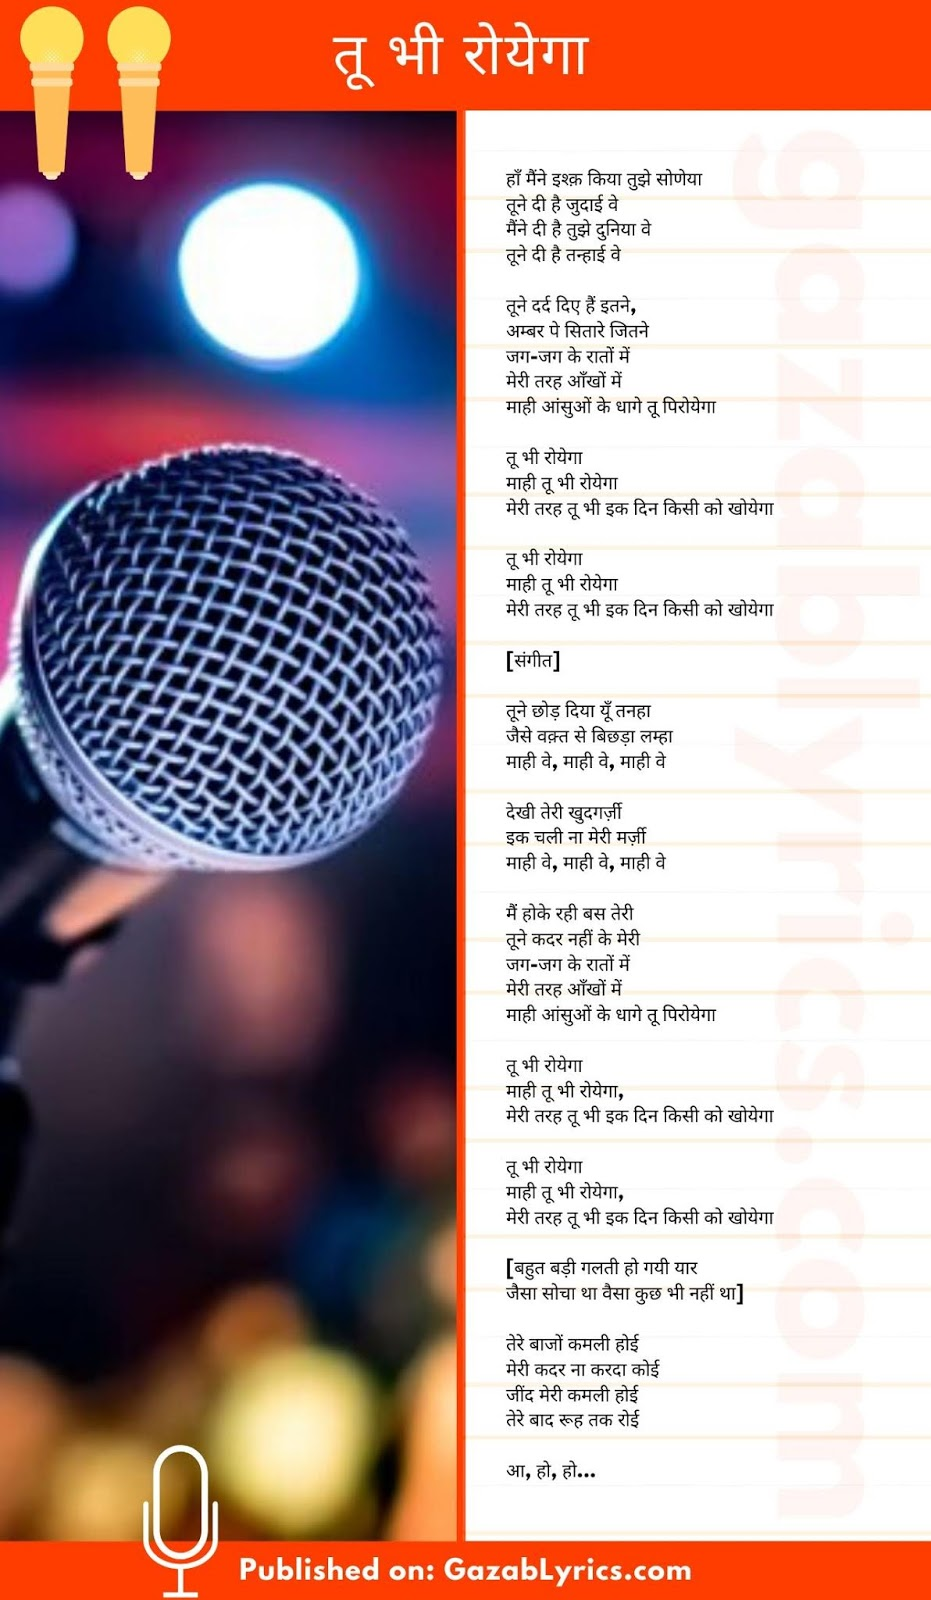 Tu Bhi Royega song lyrics image